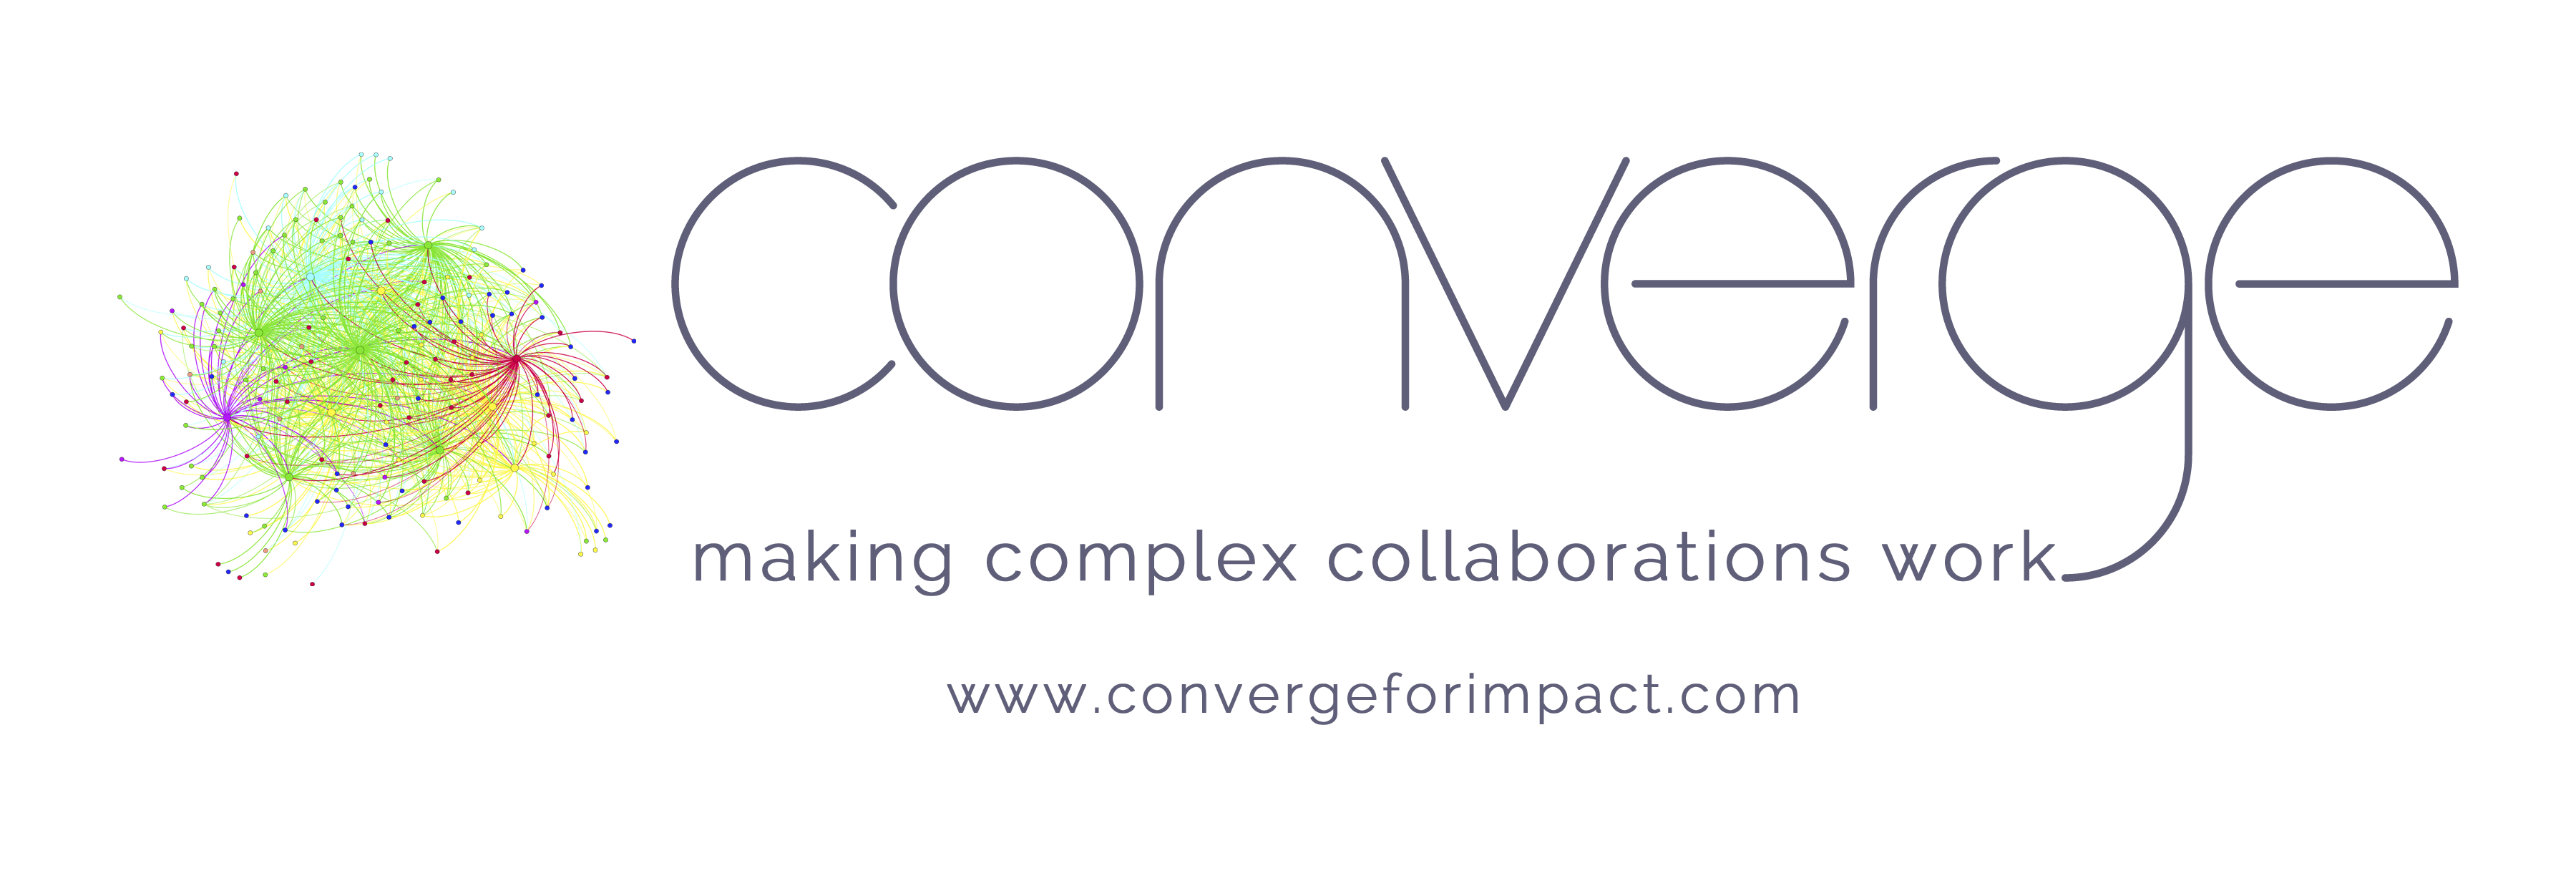 Converge For Impact - logo